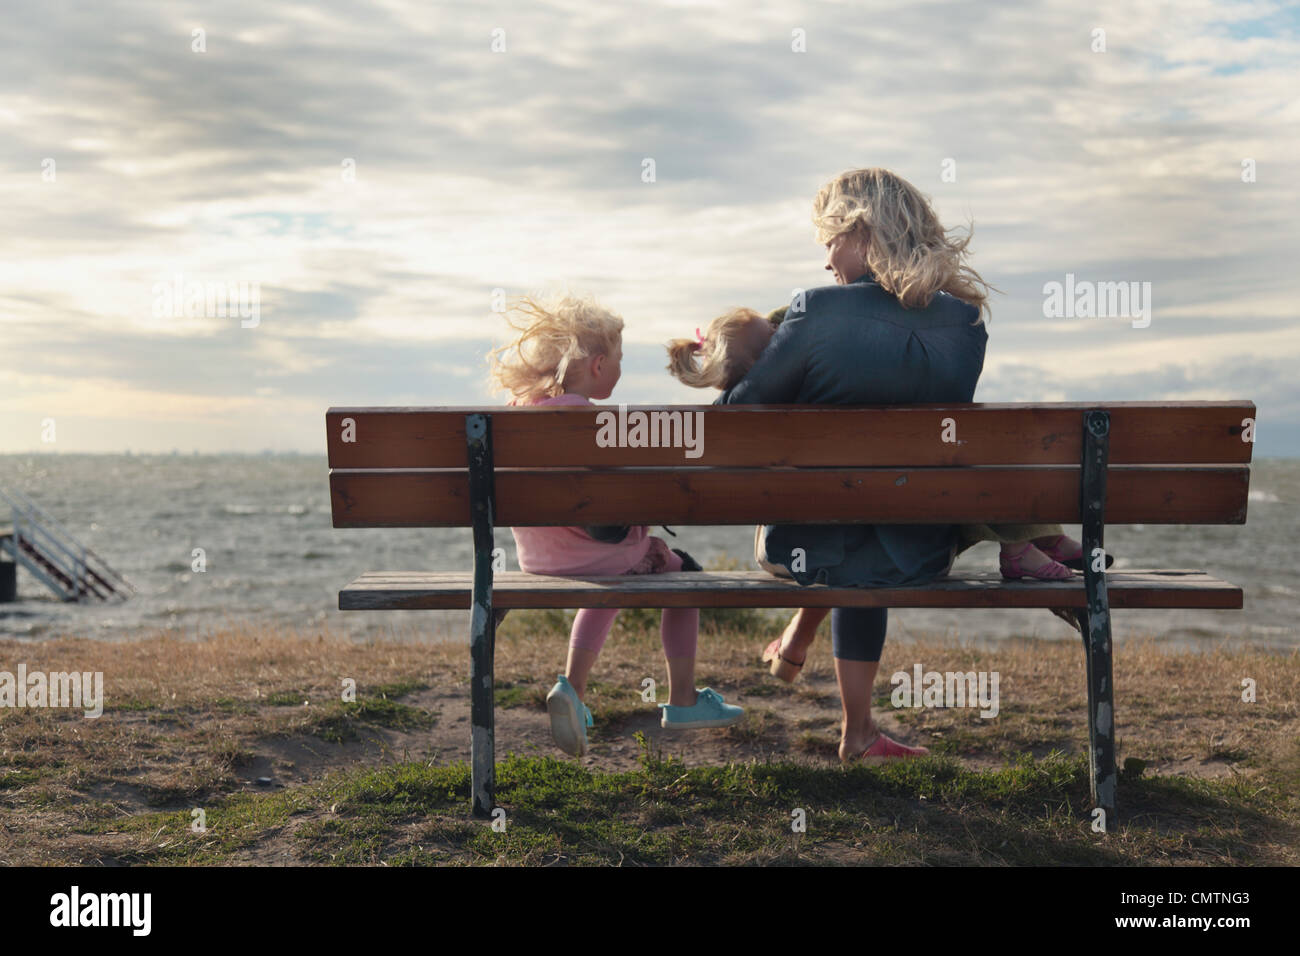 Woman and daughters (4-7) sitting on bench at beach - Stock Image